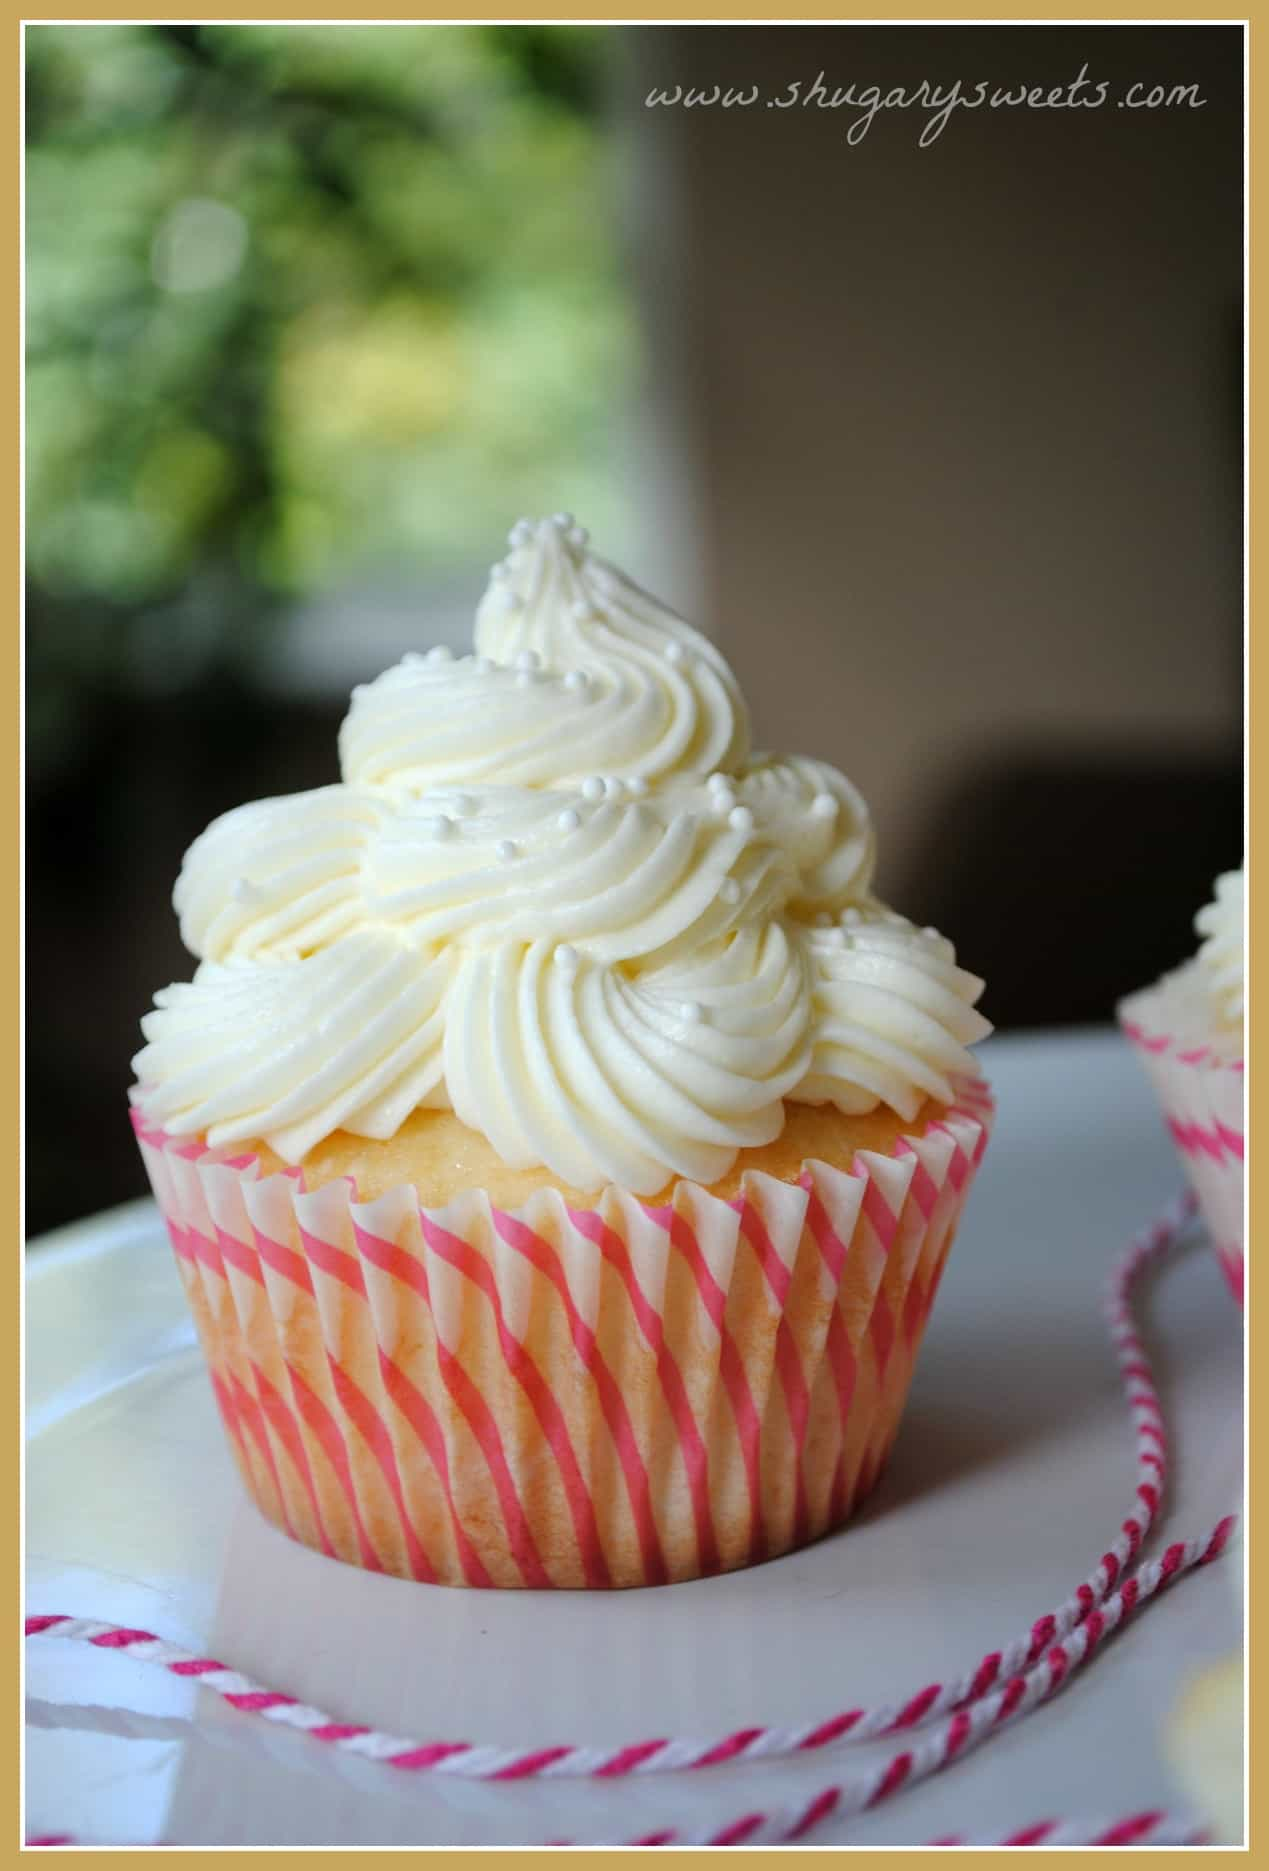 Almond Wedding Cake.Almond Wedding Cake Cupcakes With Raspberry Filling Shugary Sweets